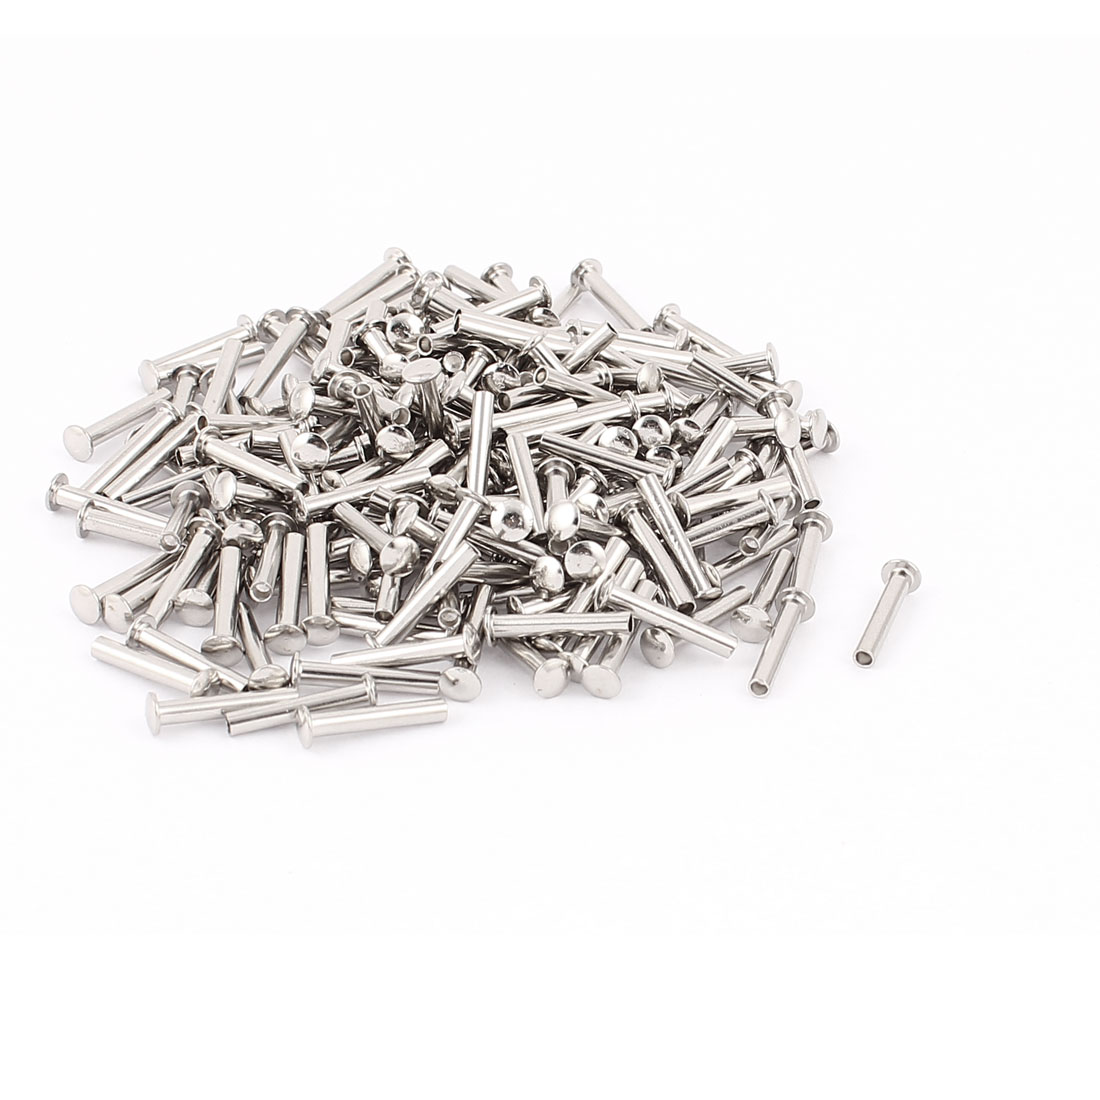 "200 Pcs 3/32"" x 35/64"" Nickel Plated Fasteners Oval Head Semi Tubular Rivets Silver Tone"